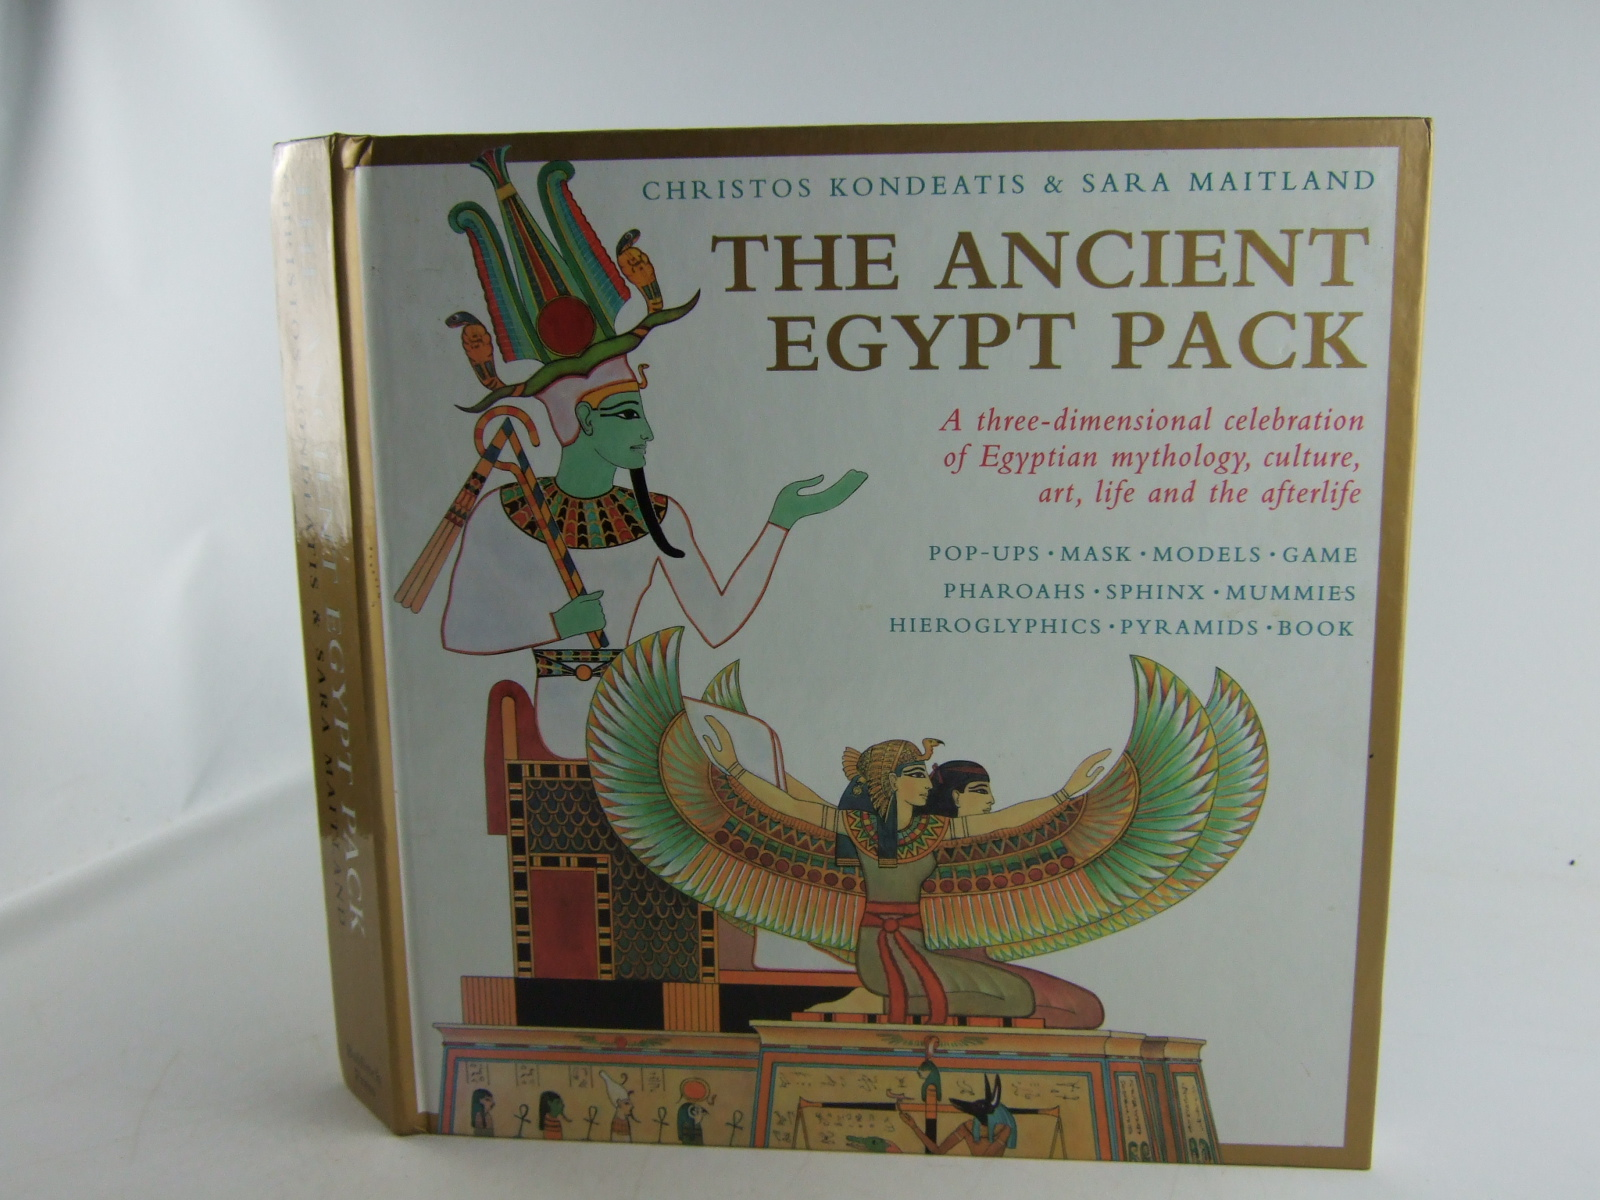 Photo of THE ANCIENT EGYPT PACK A THREE-DIMENSIONAL CELEBRATION OF EGYPTIAN MYTHOLOGY, CULTURE, ART, LIFE AND THE AFTERLIFE written by Maitland, Sara illustrated by Kondeatis, Christos published by Bulfinch Press (STOCK CODE: 1806430)  for sale by Stella & Rose's Books